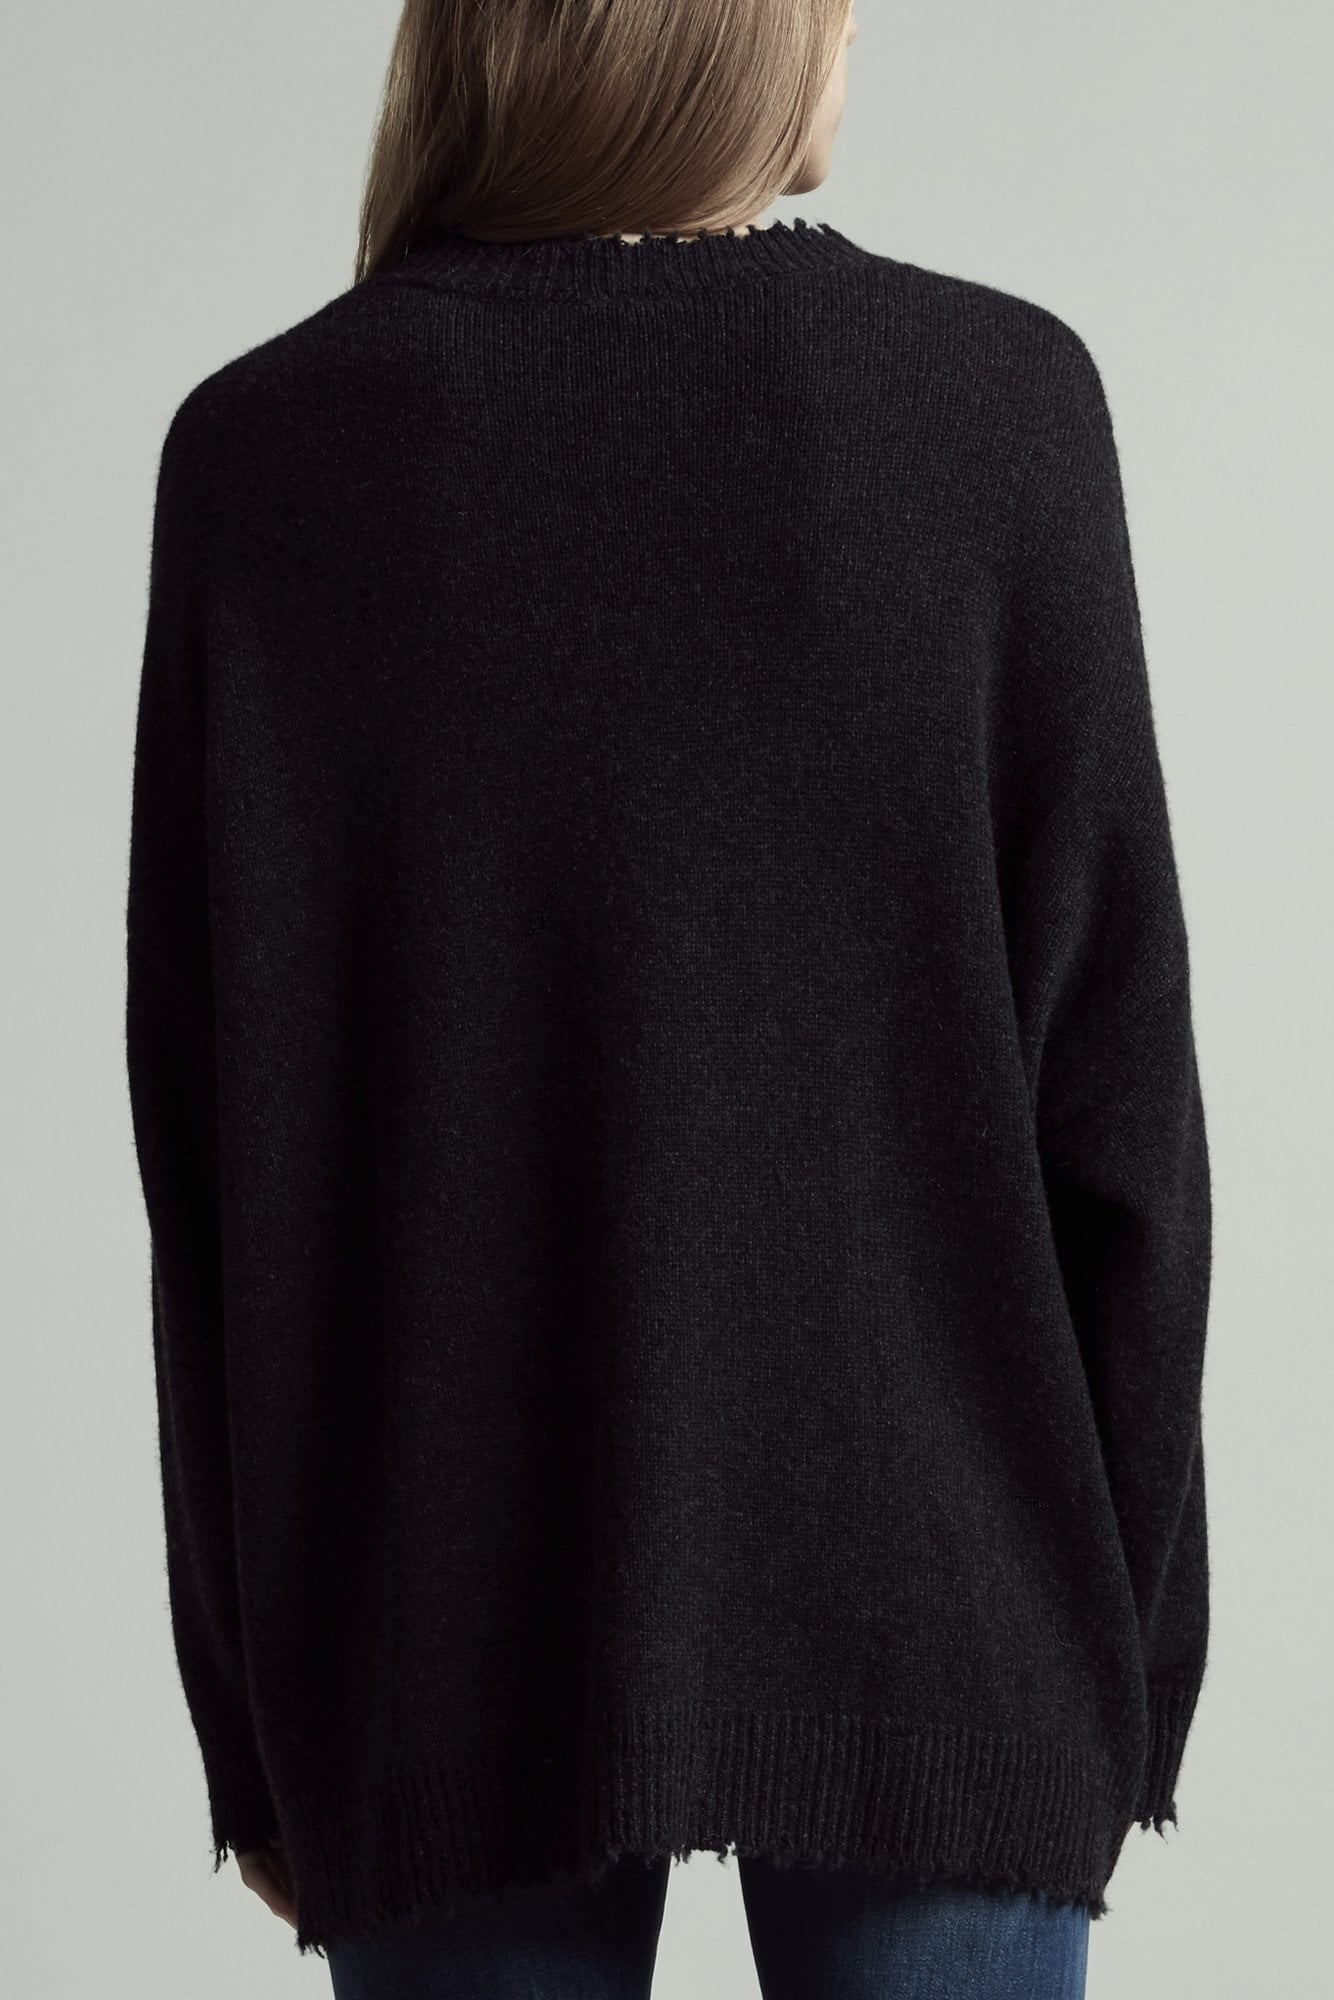 Boyfriend Crewneck Cashmere Sweater - Charcoal